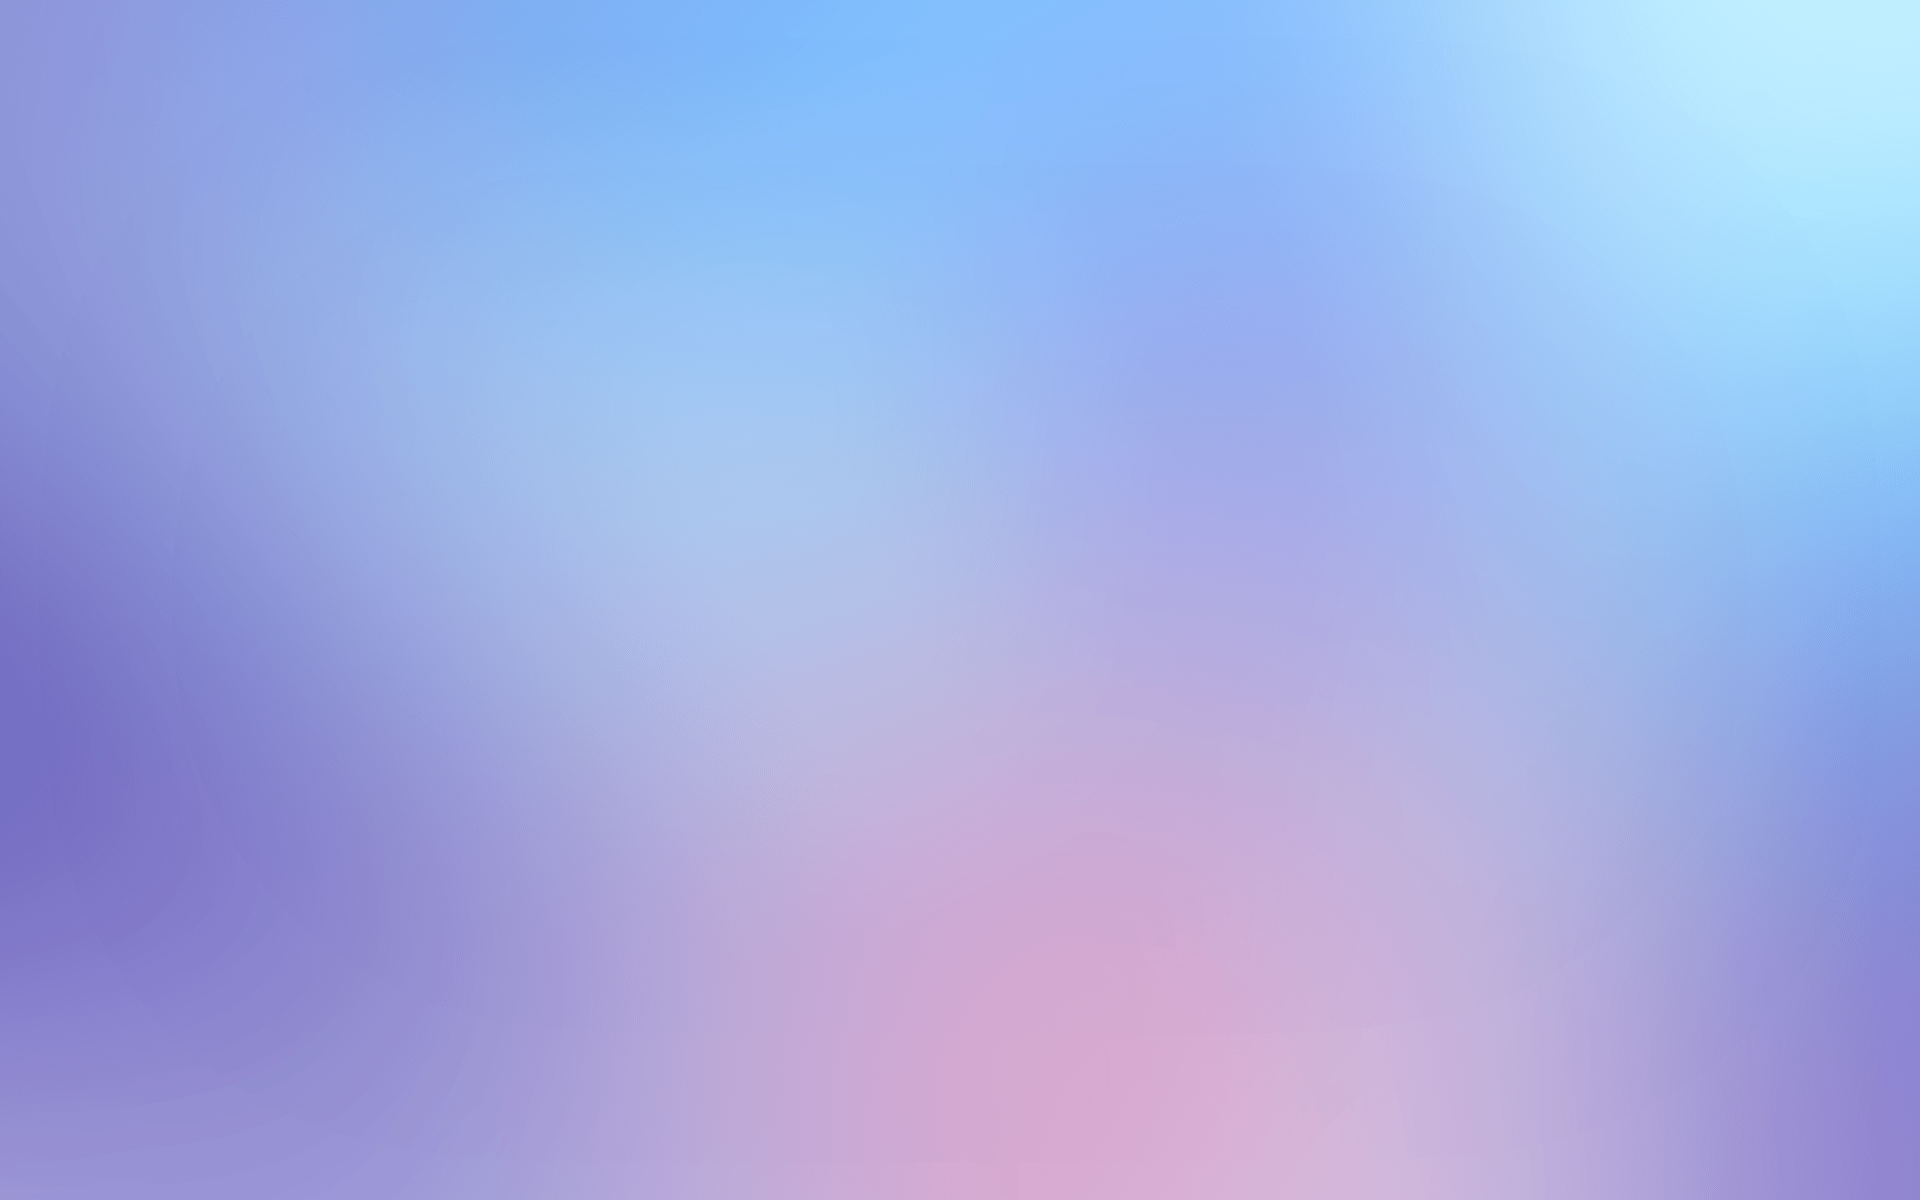 Light Gradient Abstract Hd